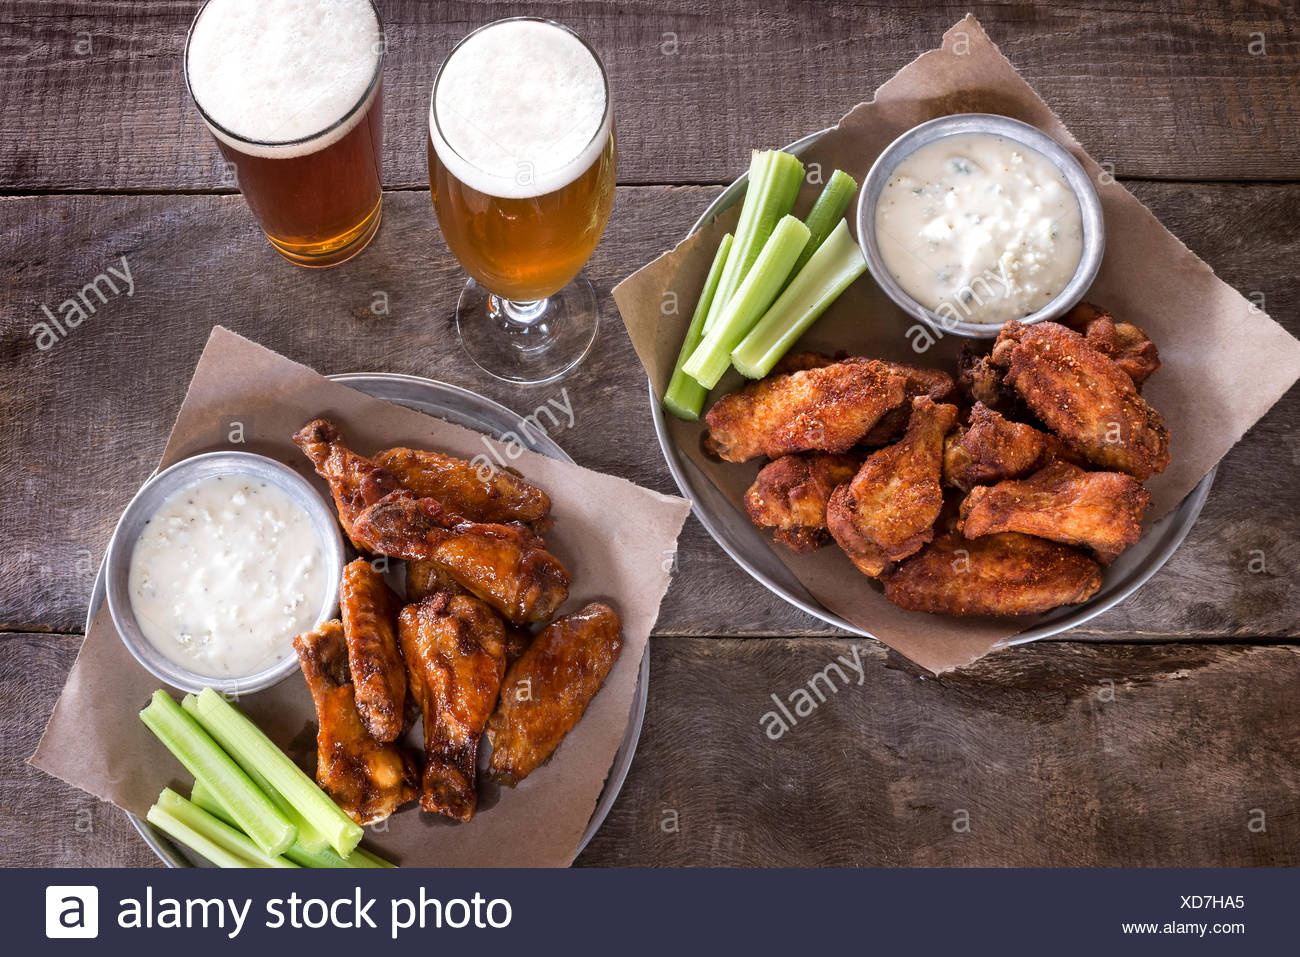 Two trays of wings and two glasses of beer on a rustic wood surface. - Stock Image